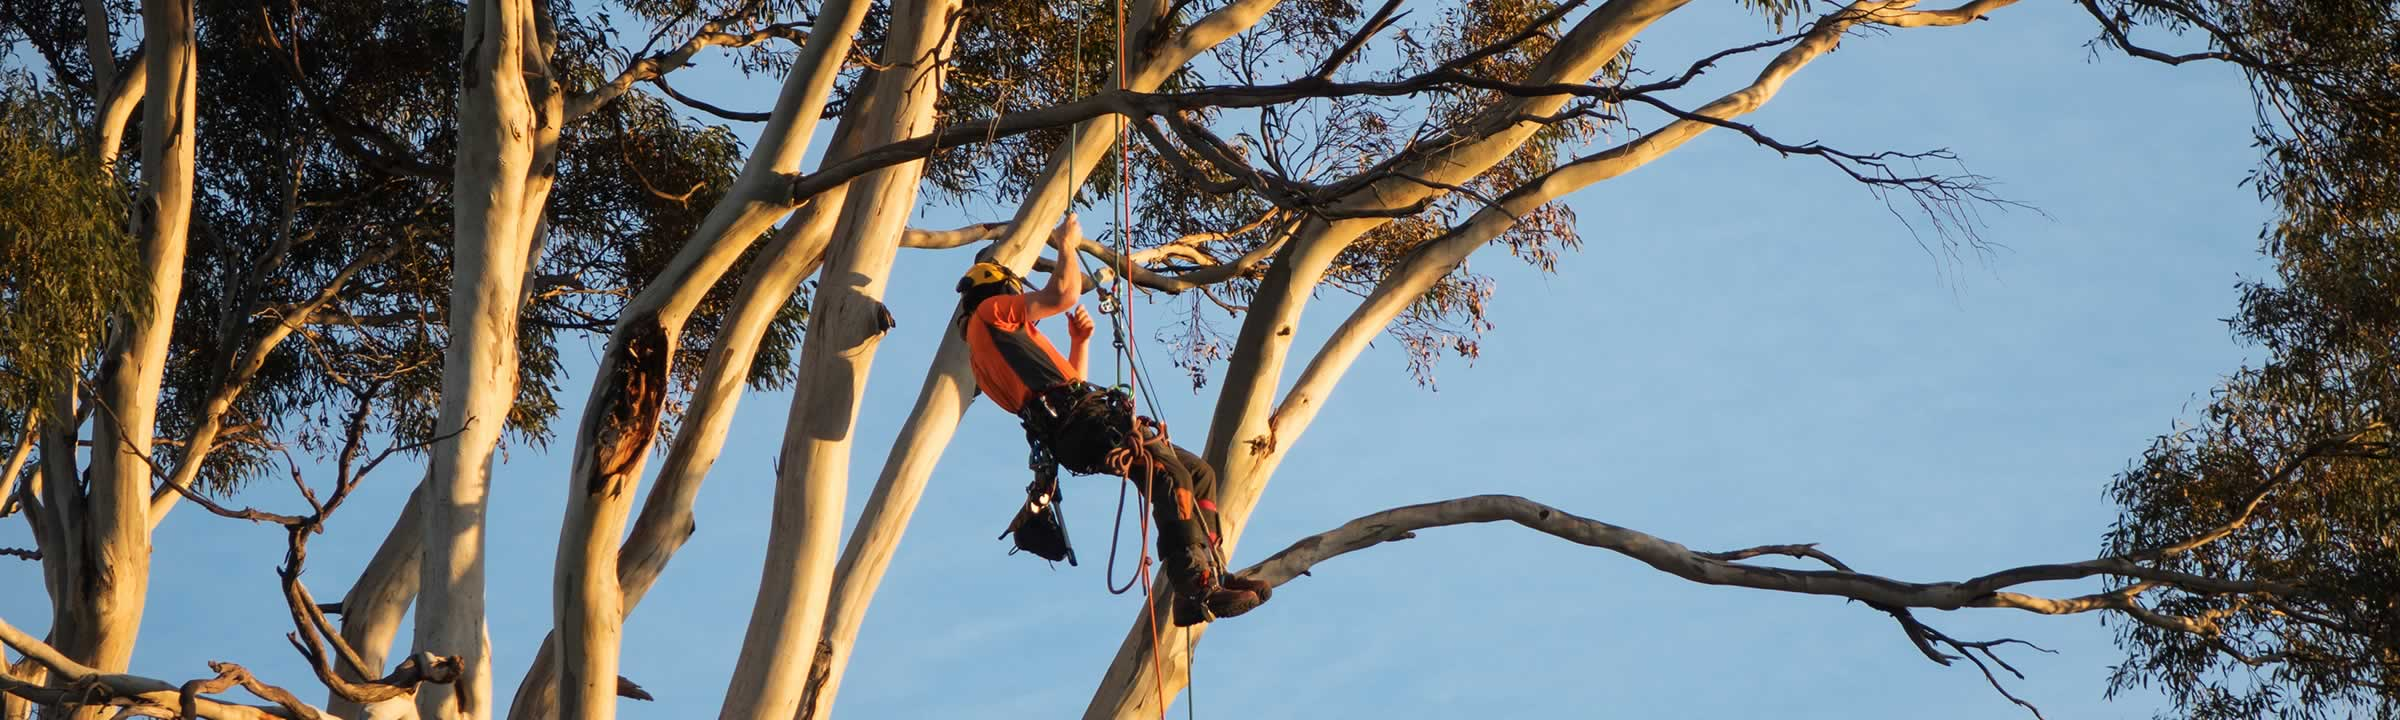 Experienced arborist at work.